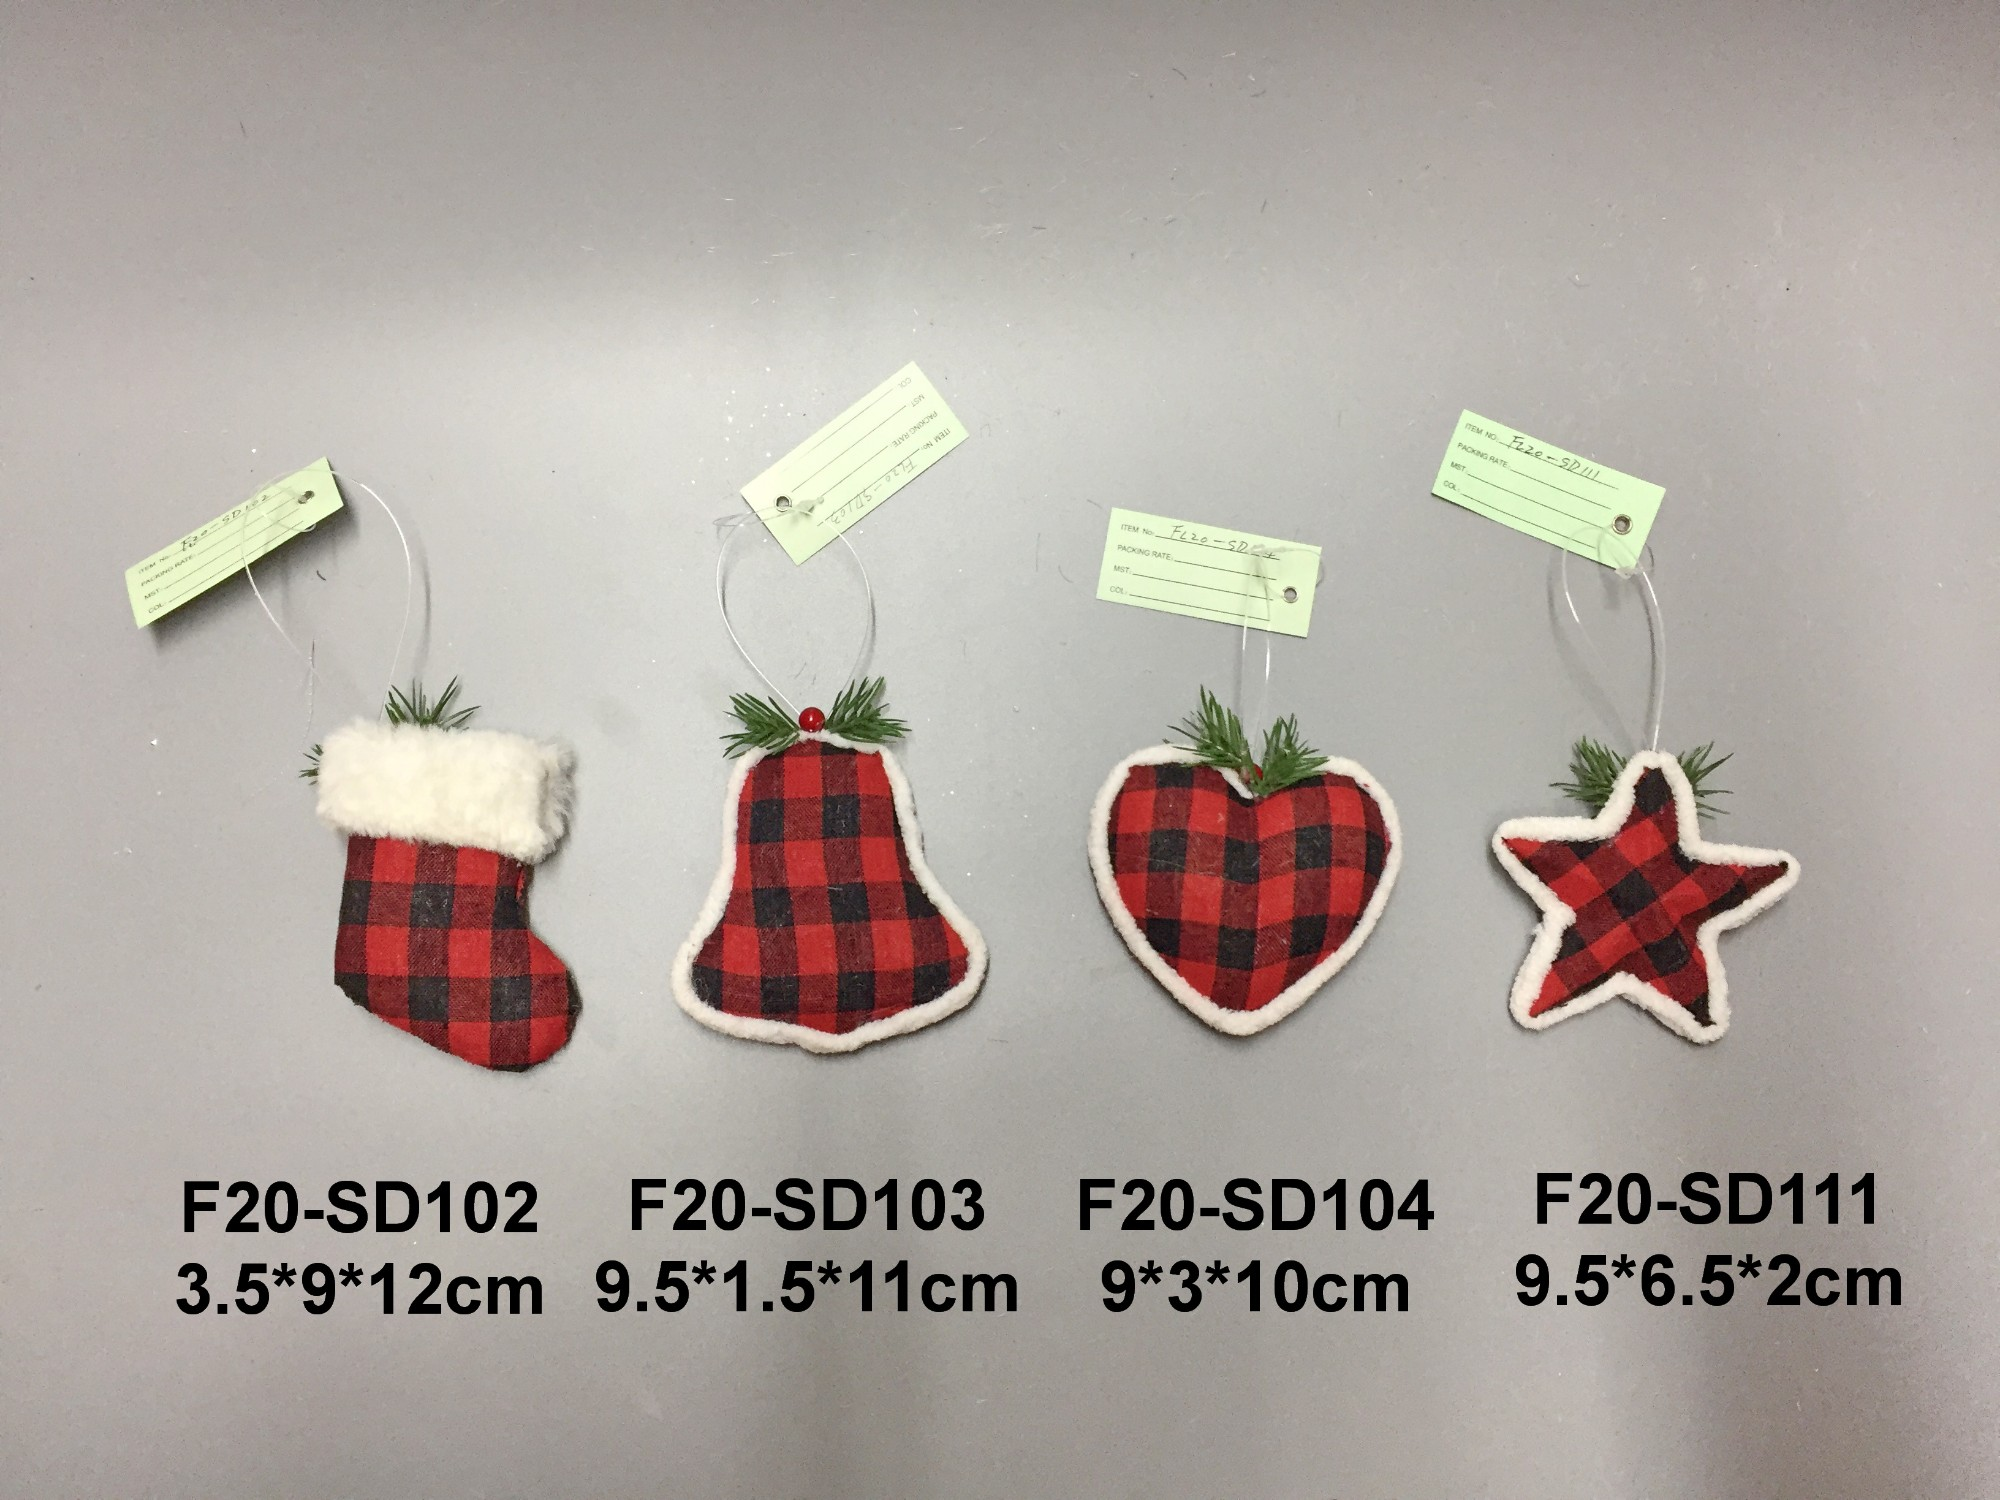 Sales Christmas Deco-Hanging items(ball/heart/star), Buy Christmas Deco-Hanging items(ball/heart/star), Christmas Deco-Hanging items(ball/heart/star) Factory, Christmas Deco-Hanging items(ball/heart/star) Brands